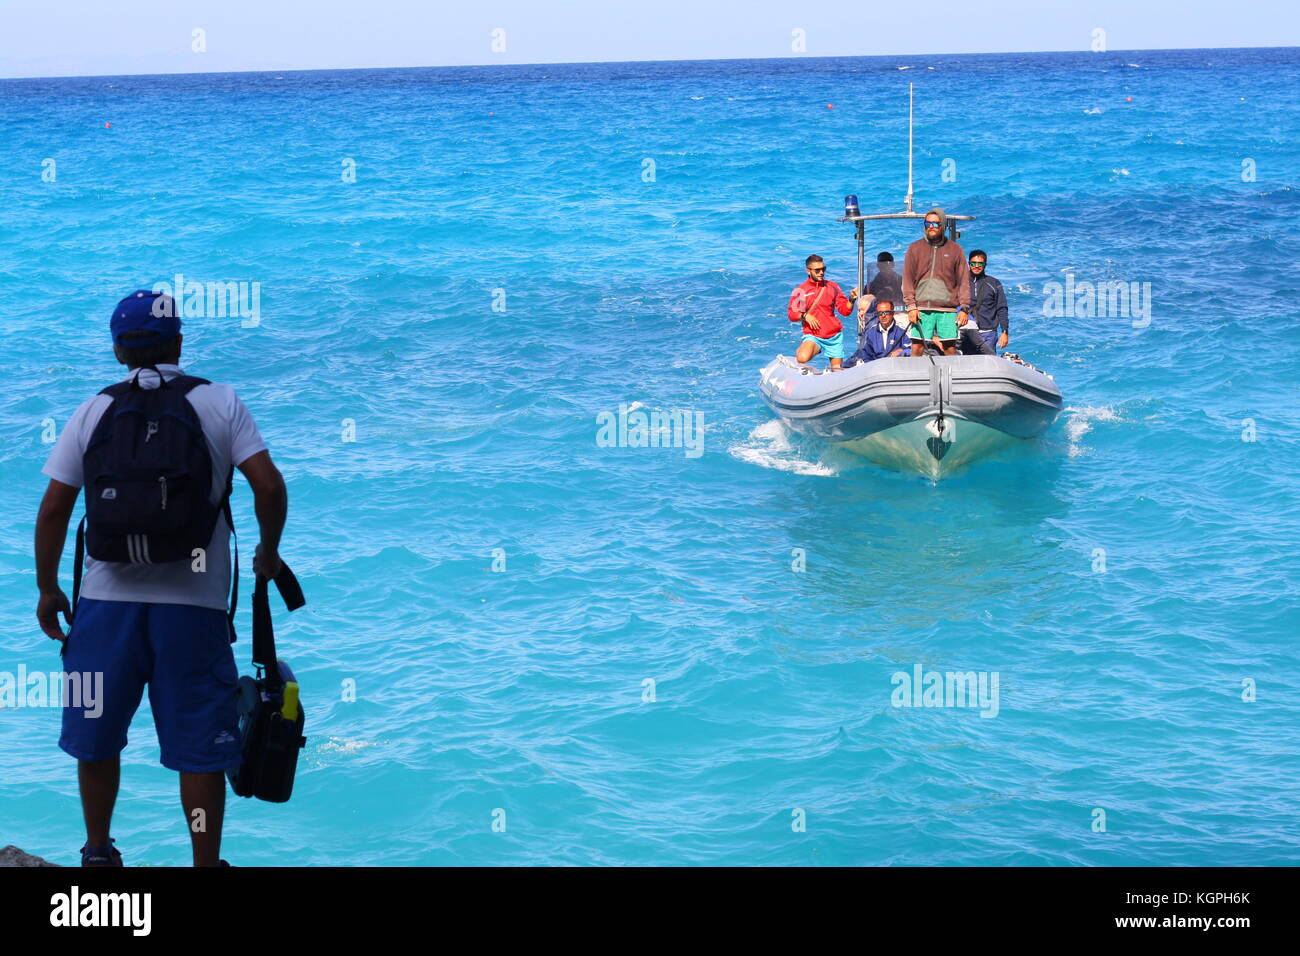 A man getting on board of a small inflatable Vigilanza boat on blue sea water in a Sardinian national park. - Stock Image